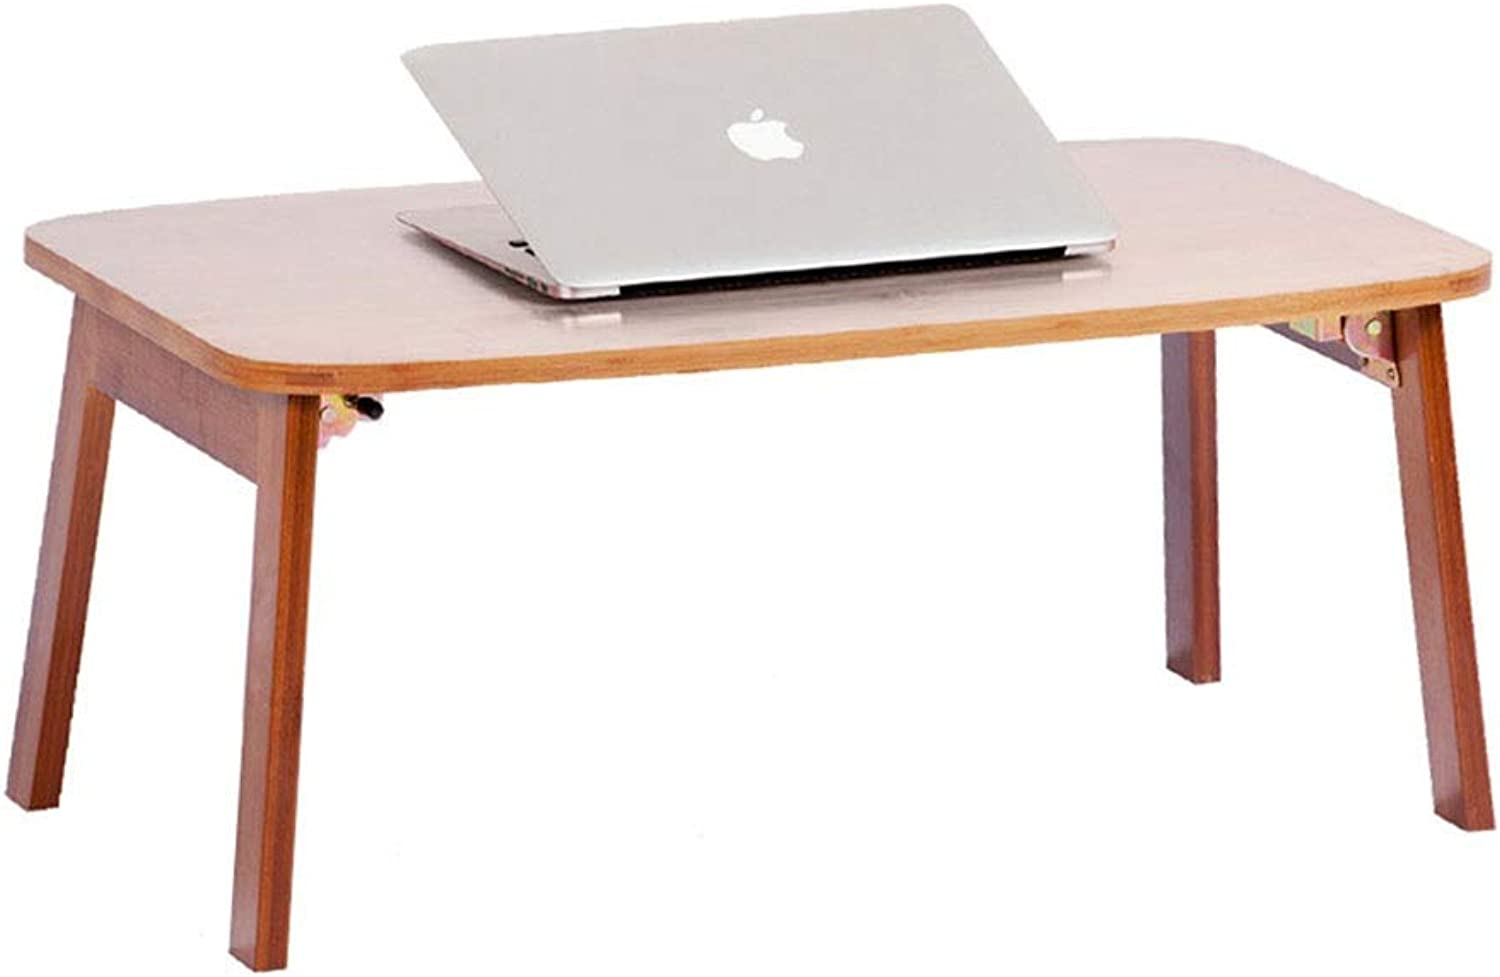 Tables Coffee Table Bedroom Small Coffee Table Household Tatami Table Learning Folding Table Balcony Bay Window Tea Table Laptop Table (color   Brown, Size   60  40  26cm)